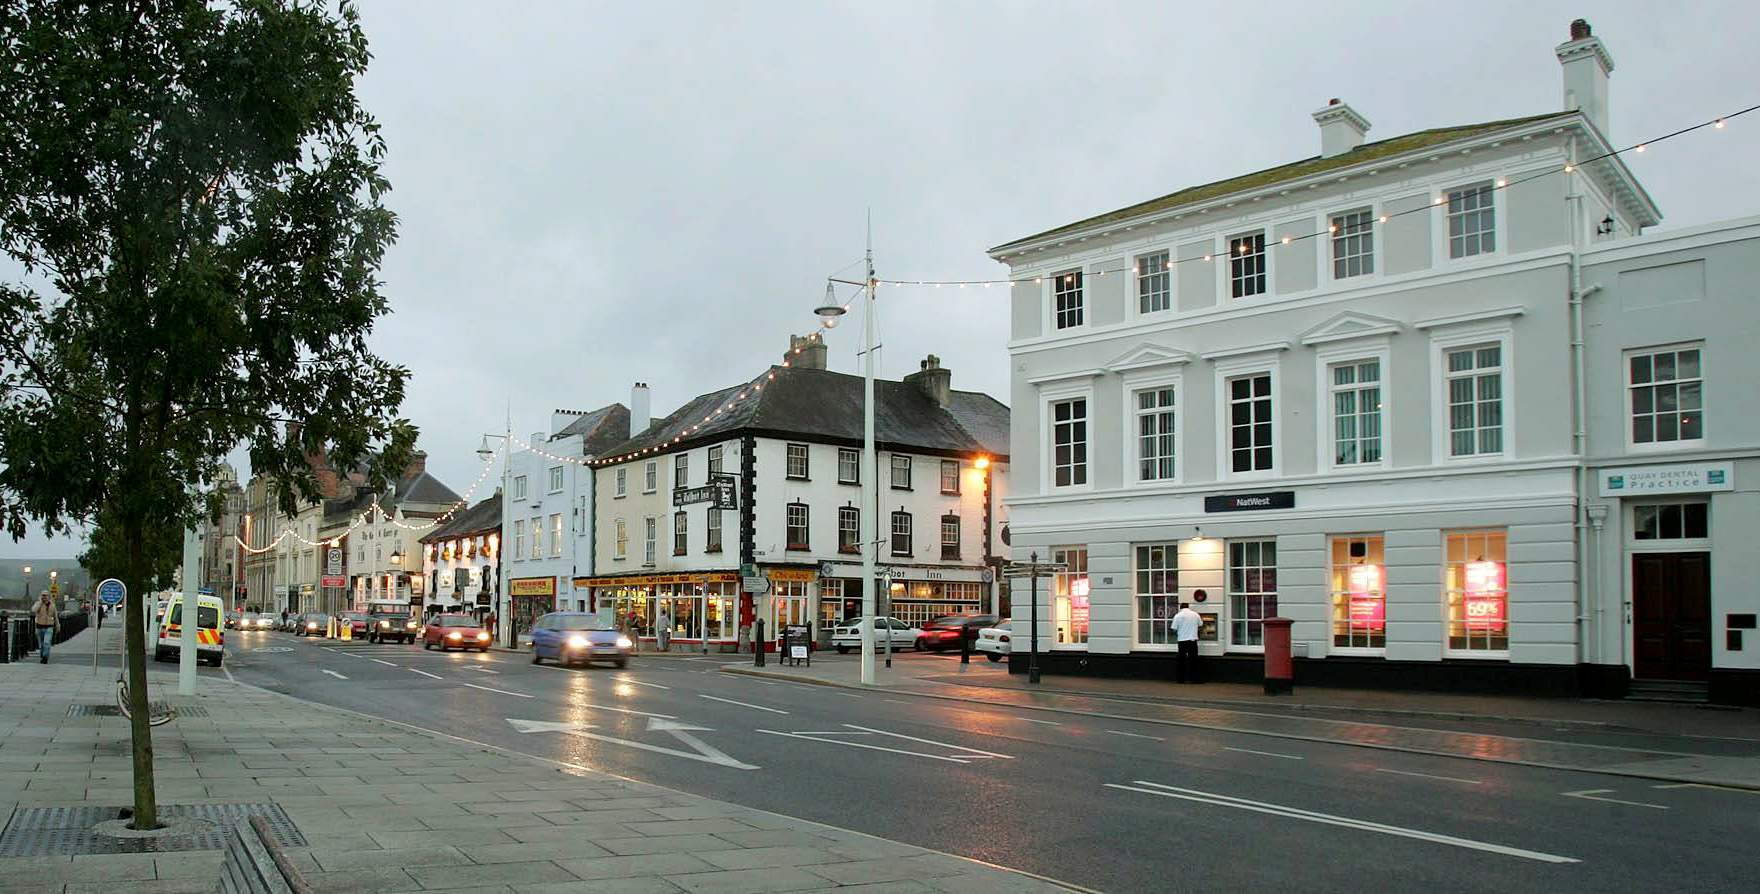 """FILE PICTURE - Bideford, Devon.  A Devon town famously referred to as the """"Little White Town"""" has agreed to change signposts to alter it's nickname after complaints were made to a councillor.  See SWNS story SWBRwhite.  Bideford in North Devon takes it's """"Little White Town"""" moniker from Charles Kingsley's  book Westward Ho! which was written in 1855 and set in and around the area.  However, it seems there are some people who want to consign what they see as a politically incorrect tag to history.  Bideford town councillor and former mayor Dermot McGeough tables a motion at last night's town council meeting which called to scrap the name from signs in the town."""